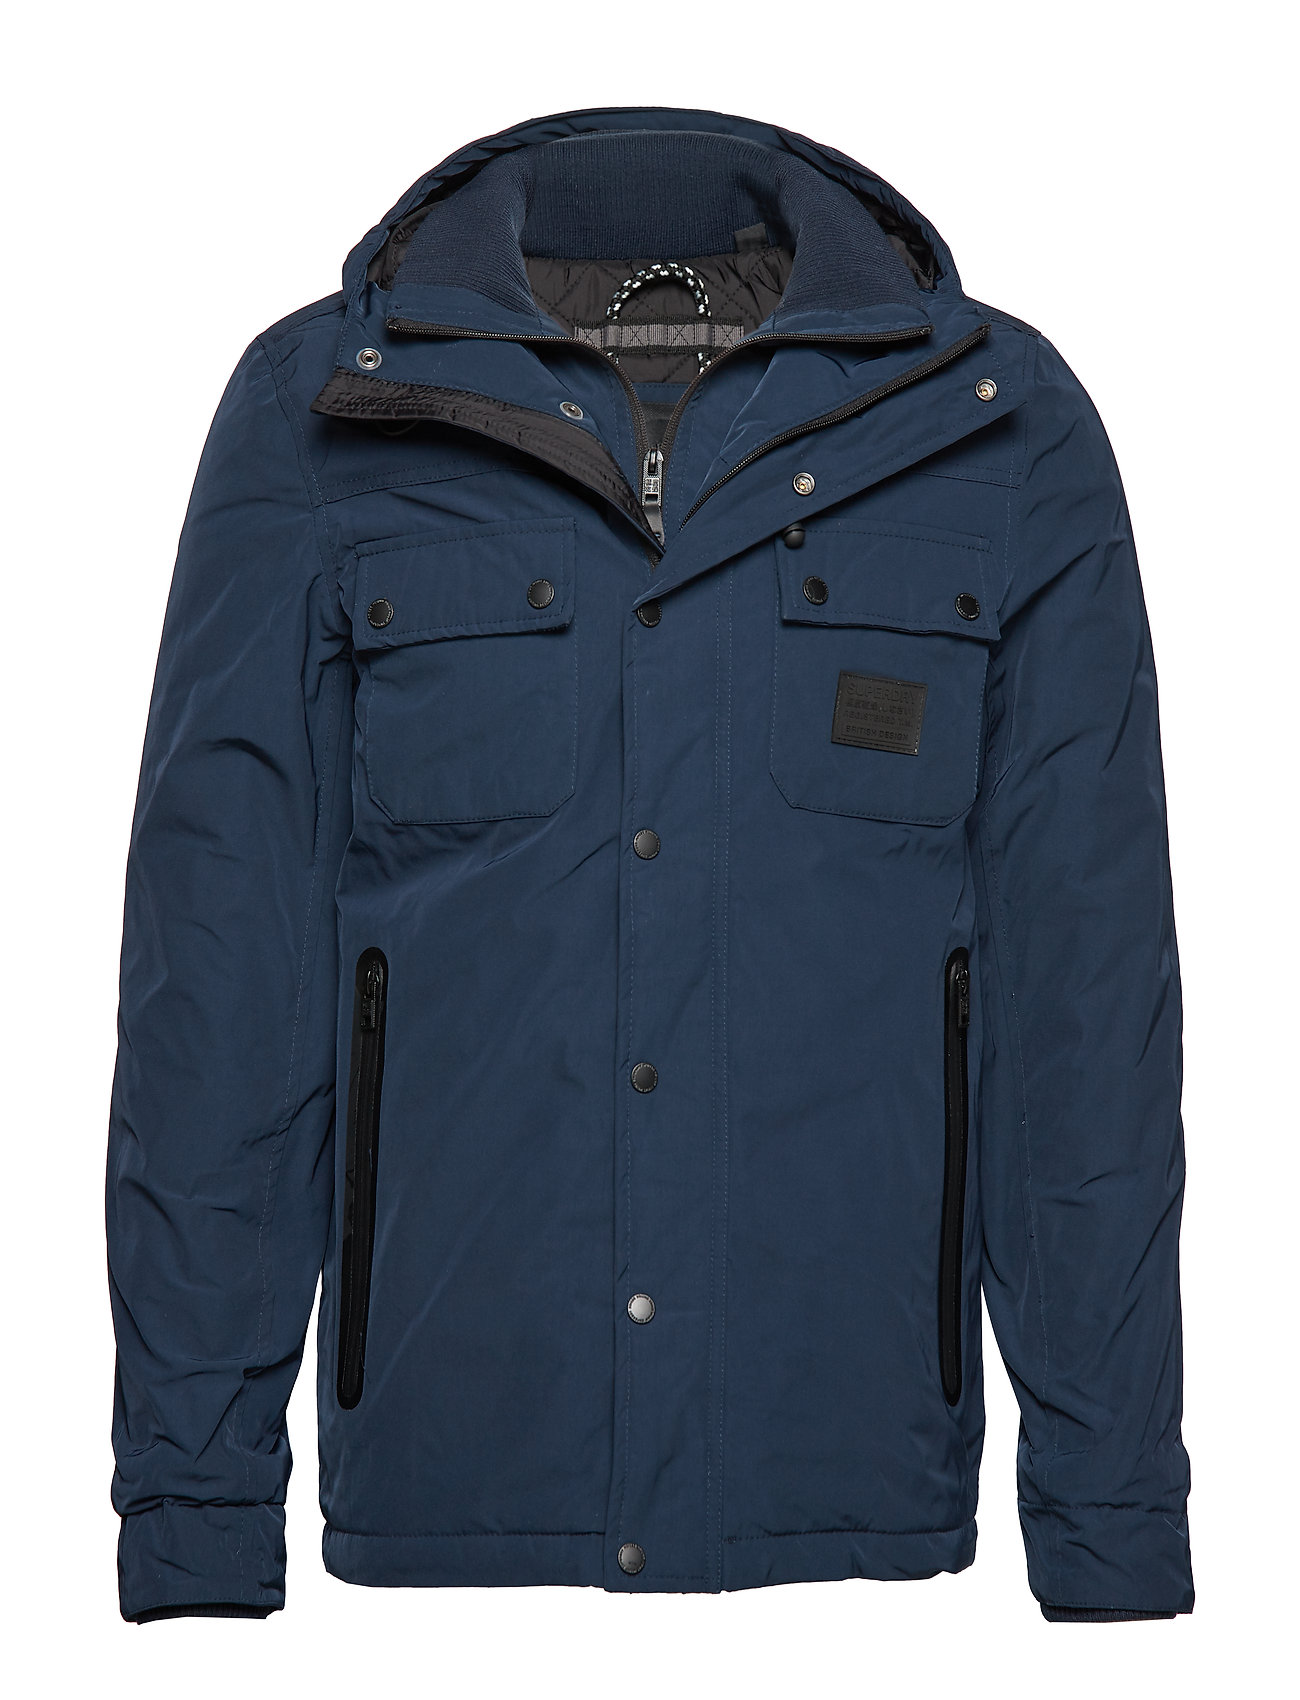 Superdry VESSEL JACKET - SUPER DARK NAVY